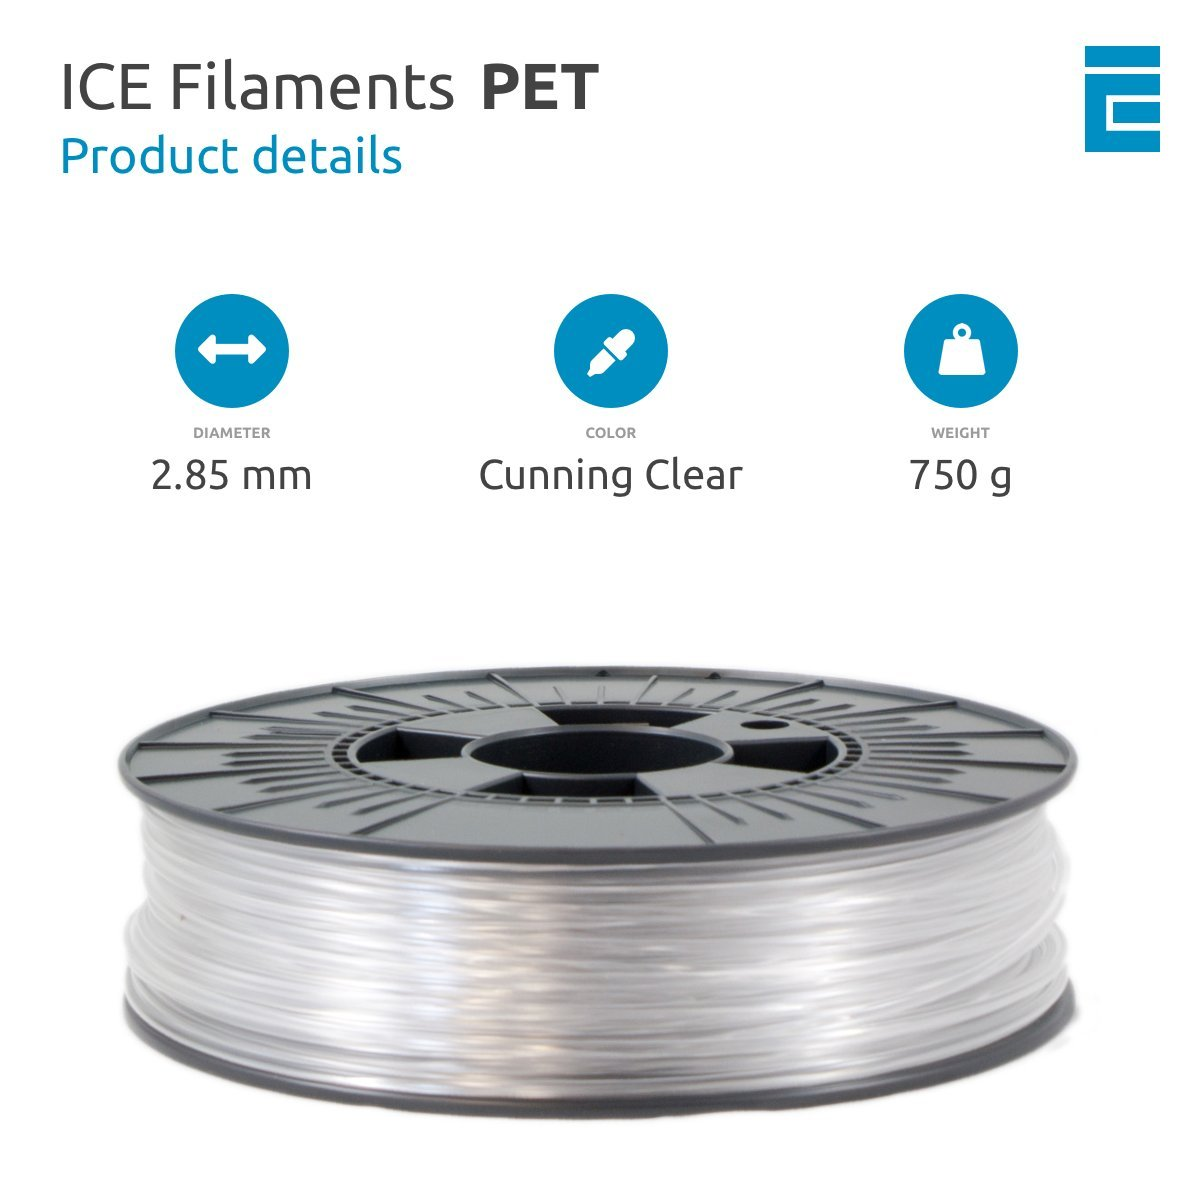 ICE Filaments ICEFIL1PET152 filamento PET,1.75mm, 0.75 kg, Cunning ...